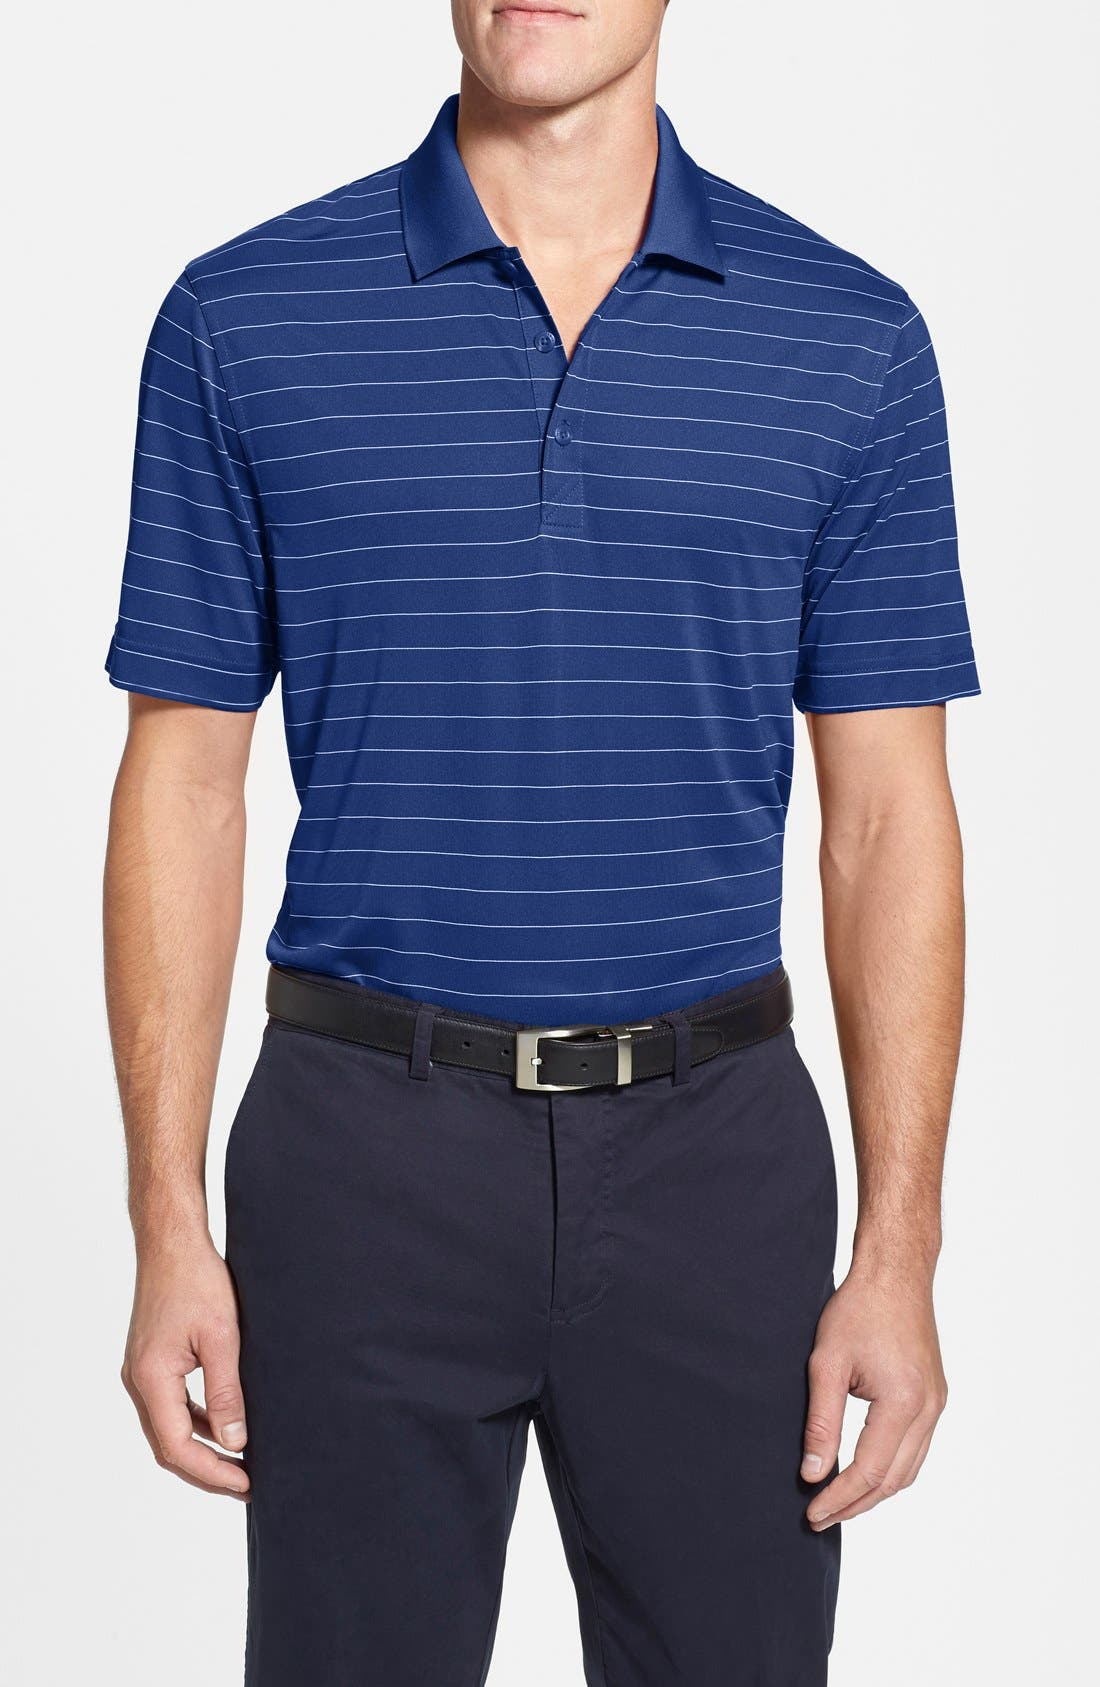 Alternate Image 1 Selected - Cutter & Buck Franklin Stripe DryTec® Polo